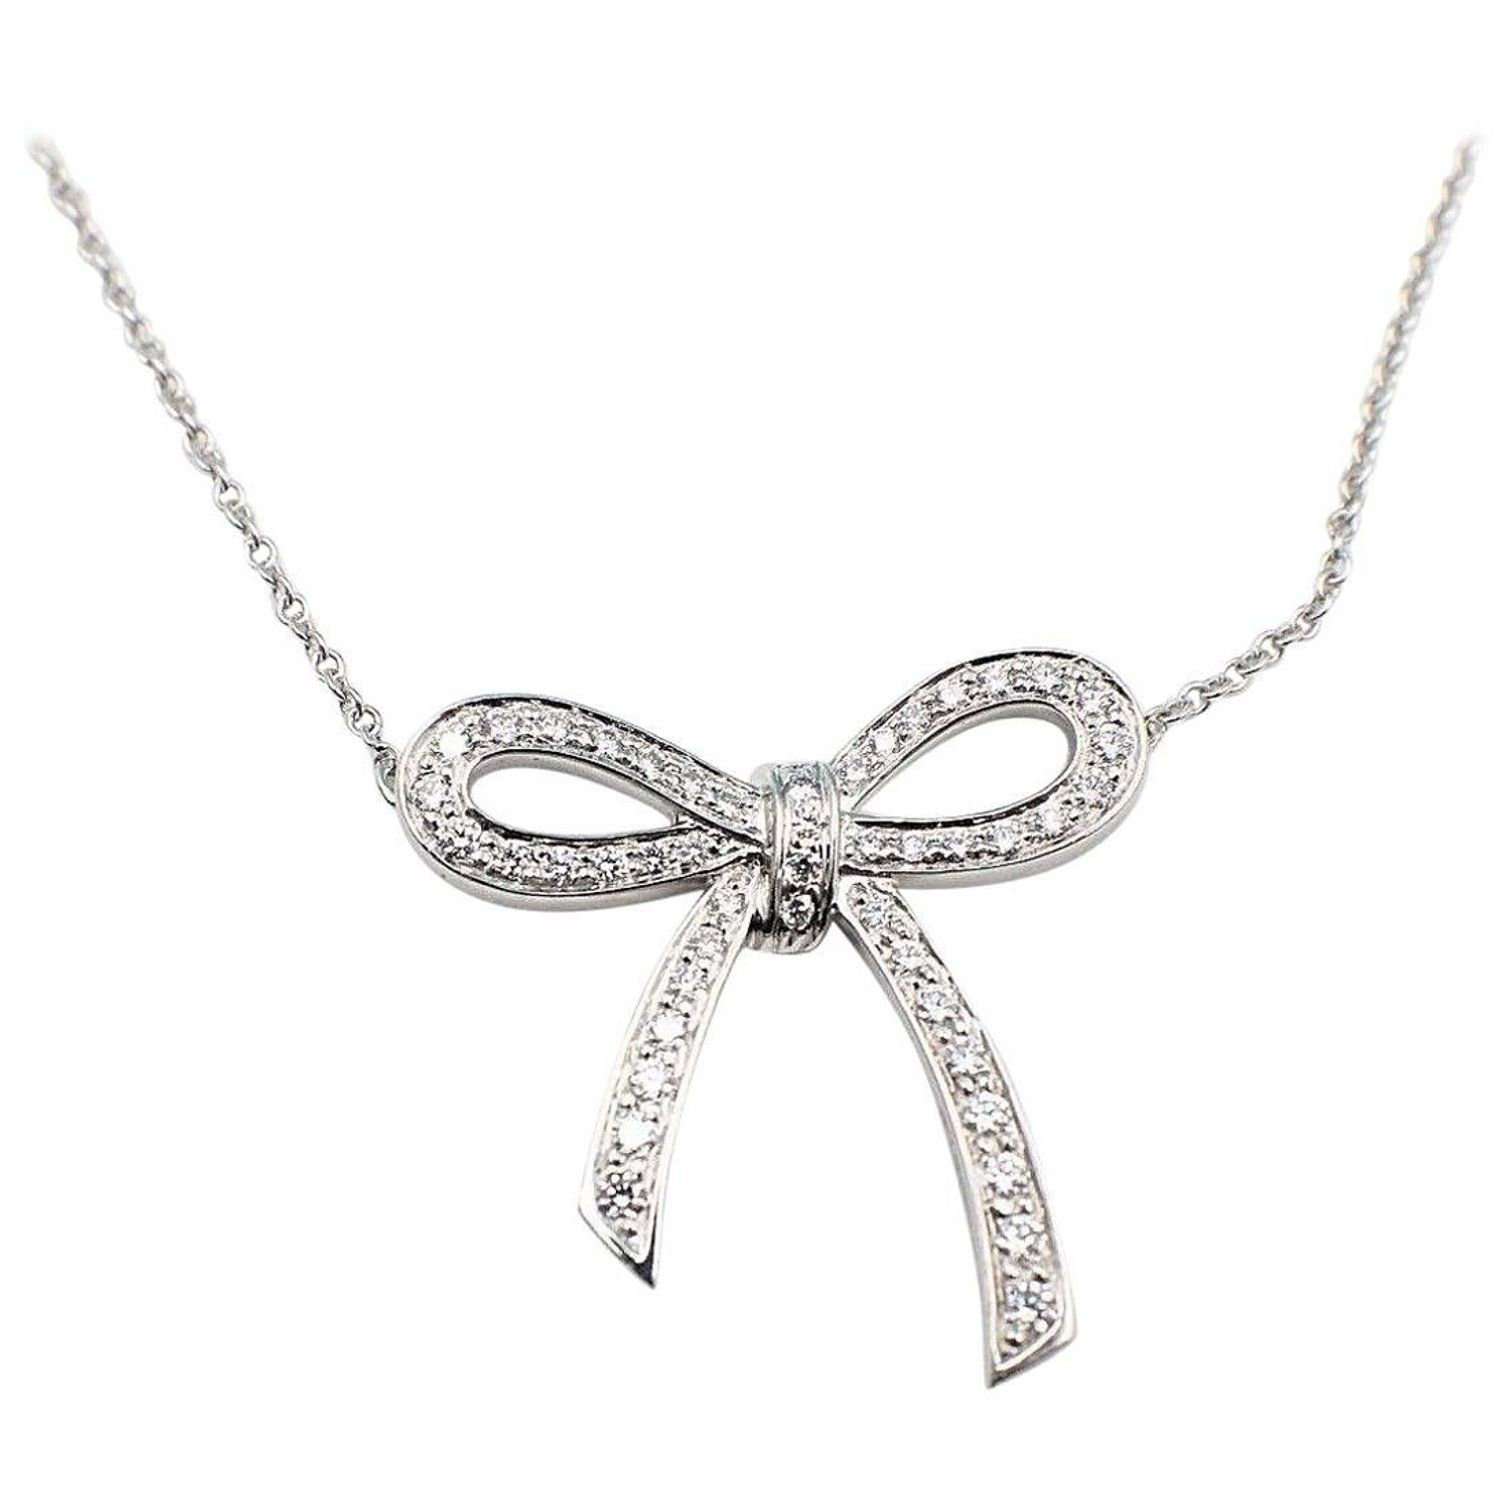 883d3de40d7a0 Tiffany & Co. Diamond and Platinum Bow Pendant Necklace in 2019 ...